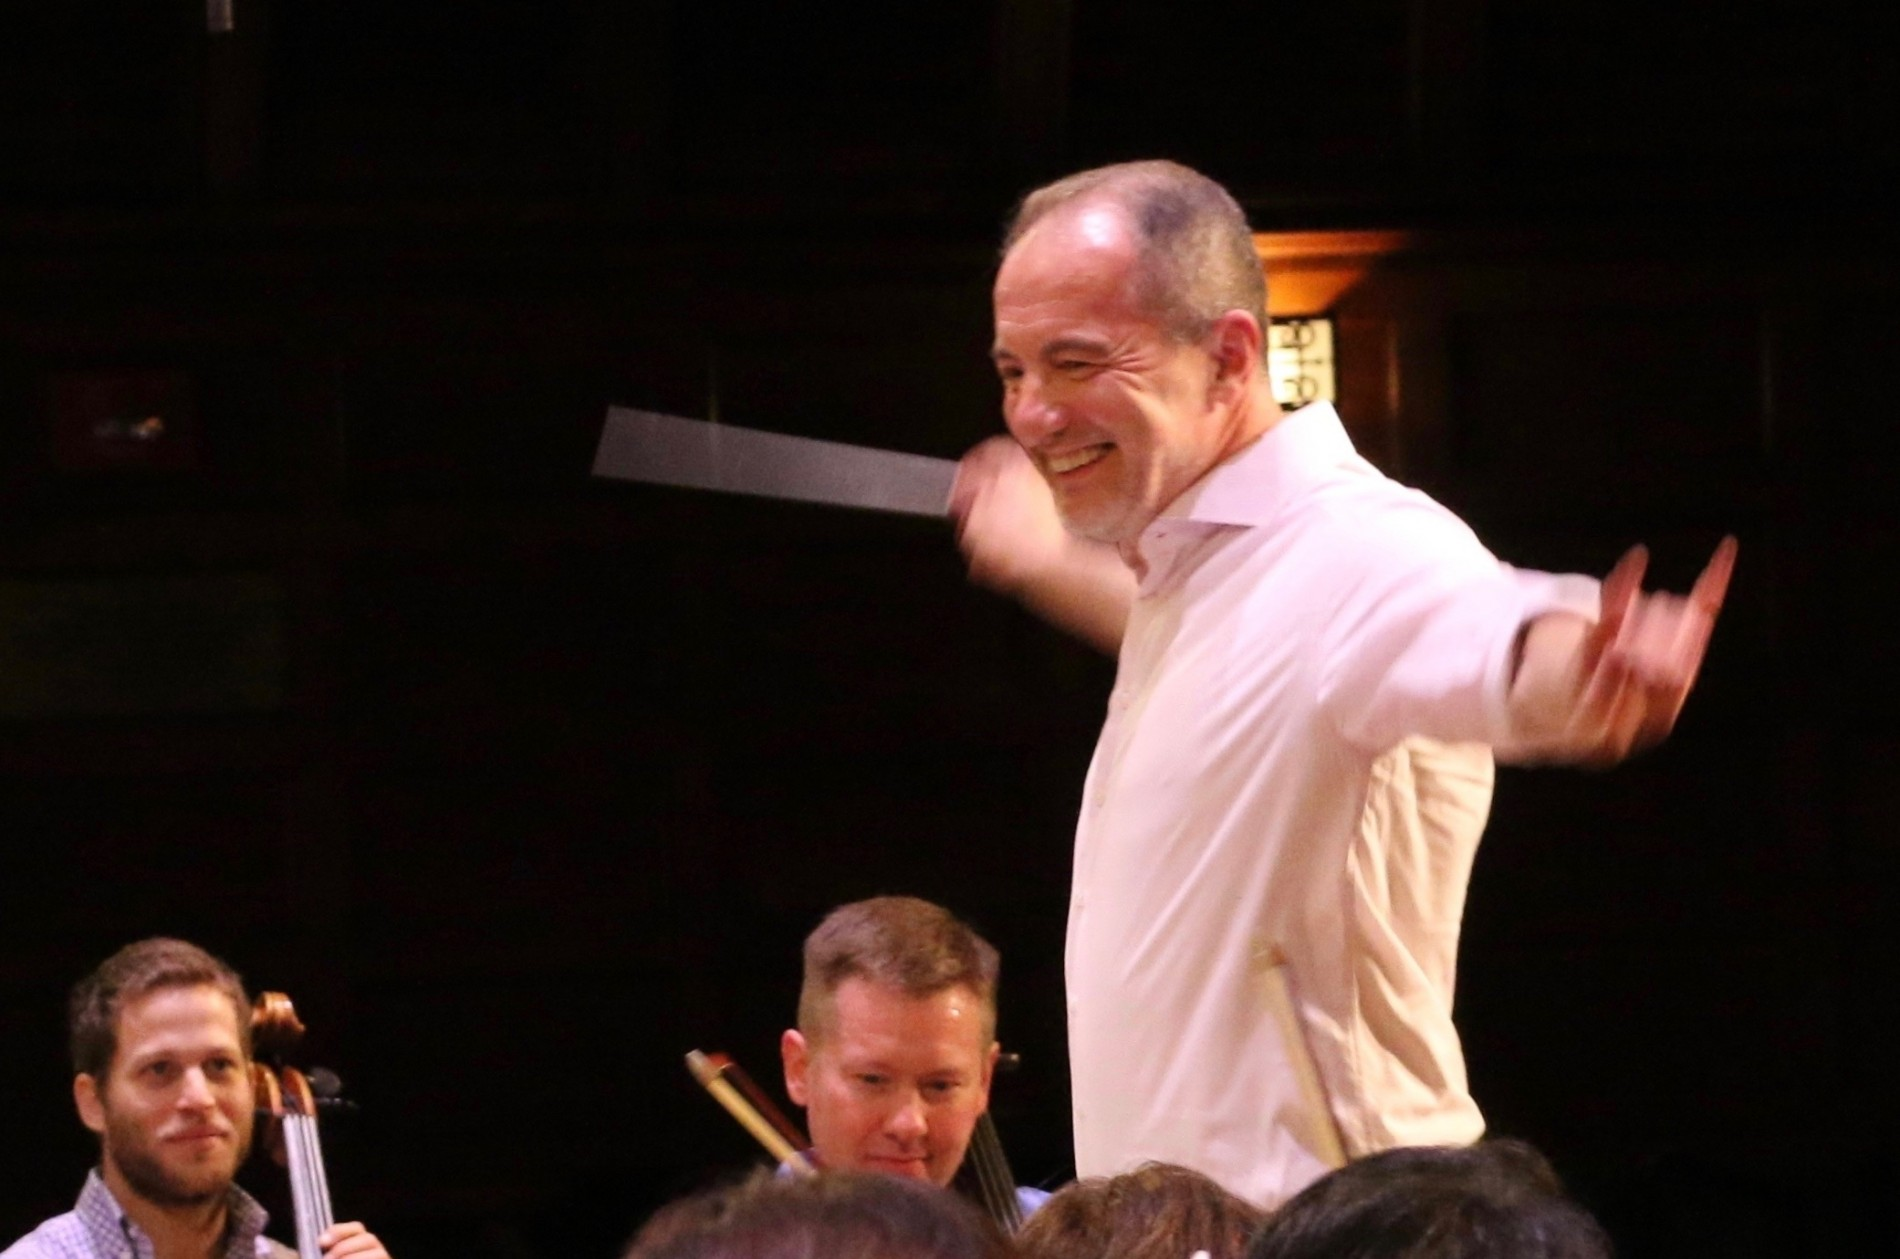 Rossen Milanov conducting in rehearsal